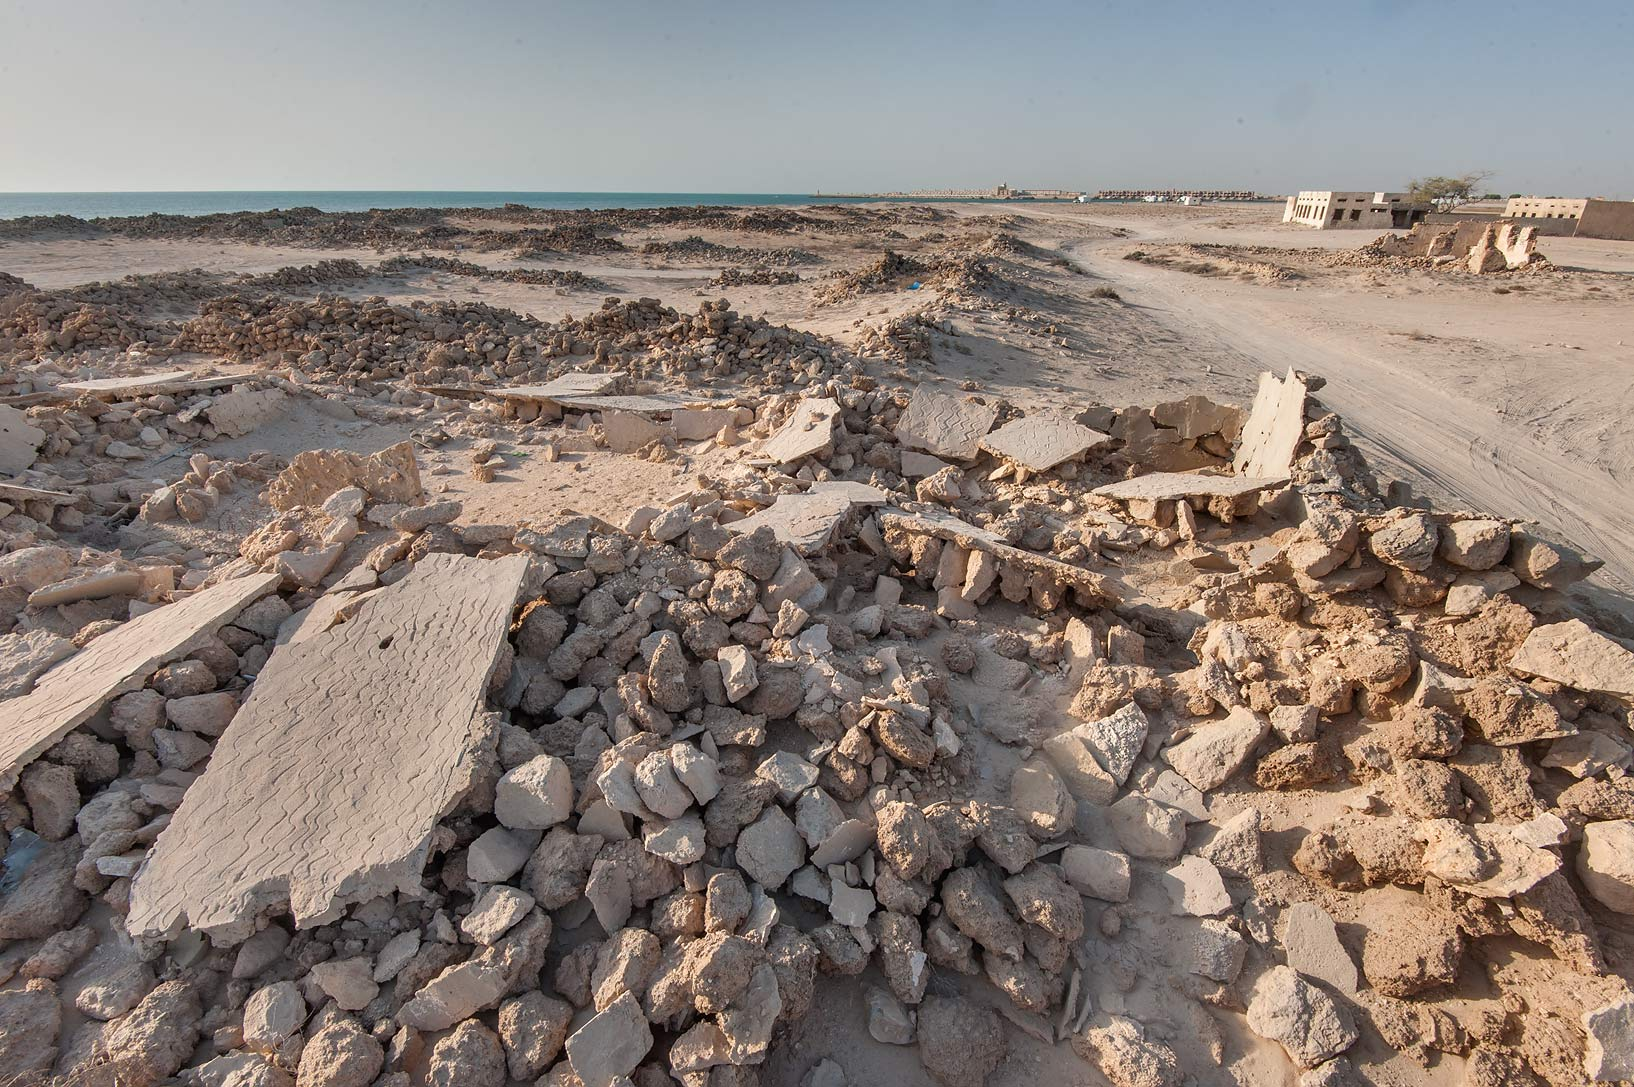 Old fishing village (ghost town) of Al Ghariyah...eastern coast, Ash Shamal area. Qatar